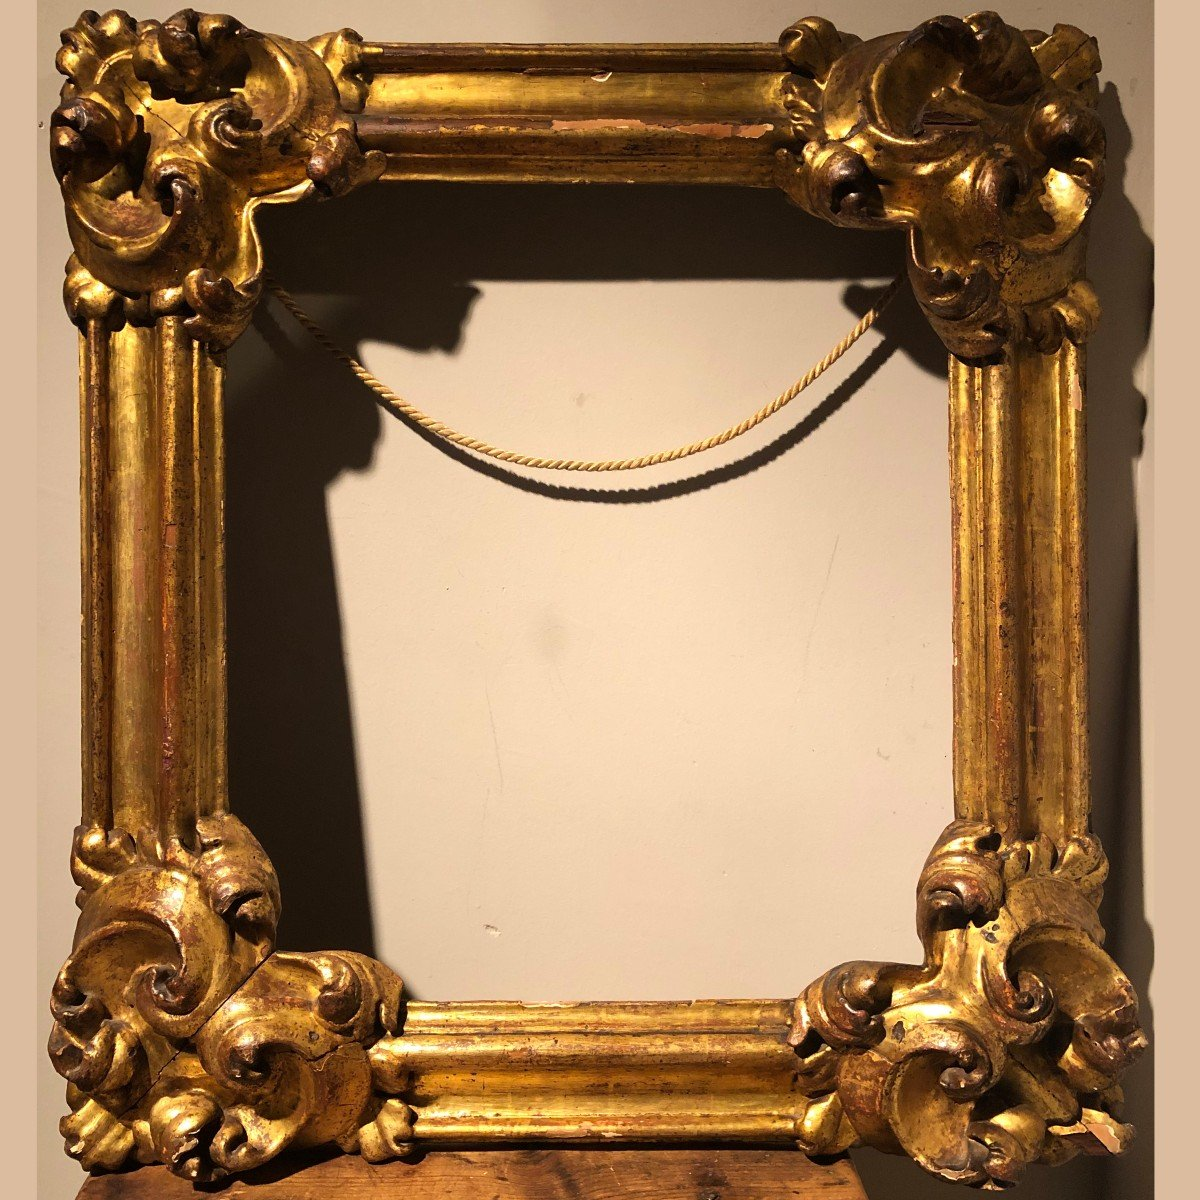 Spanish Frame In Carved Golden Wood From The End Of The Eighteenth Century.